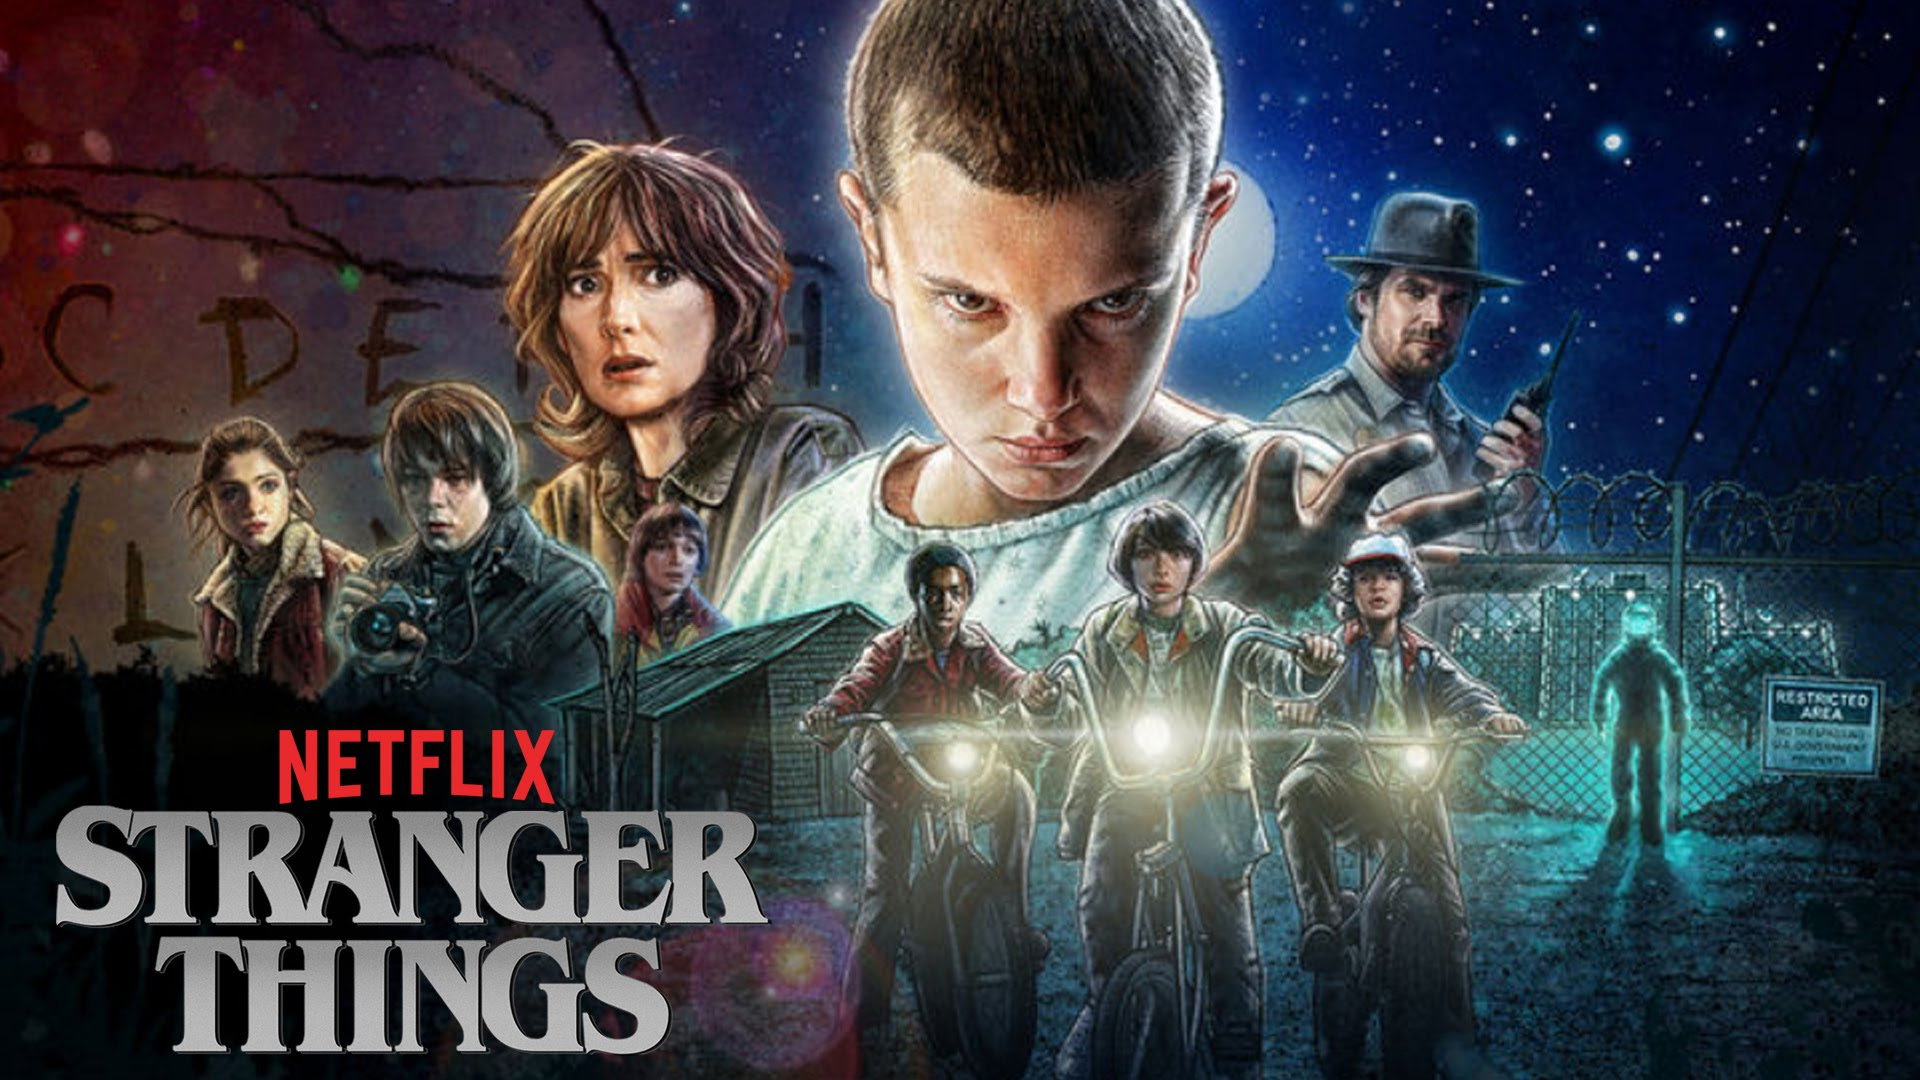 Stranger Things Wallpapers 20 Wallpapers Adorable Wallpapers